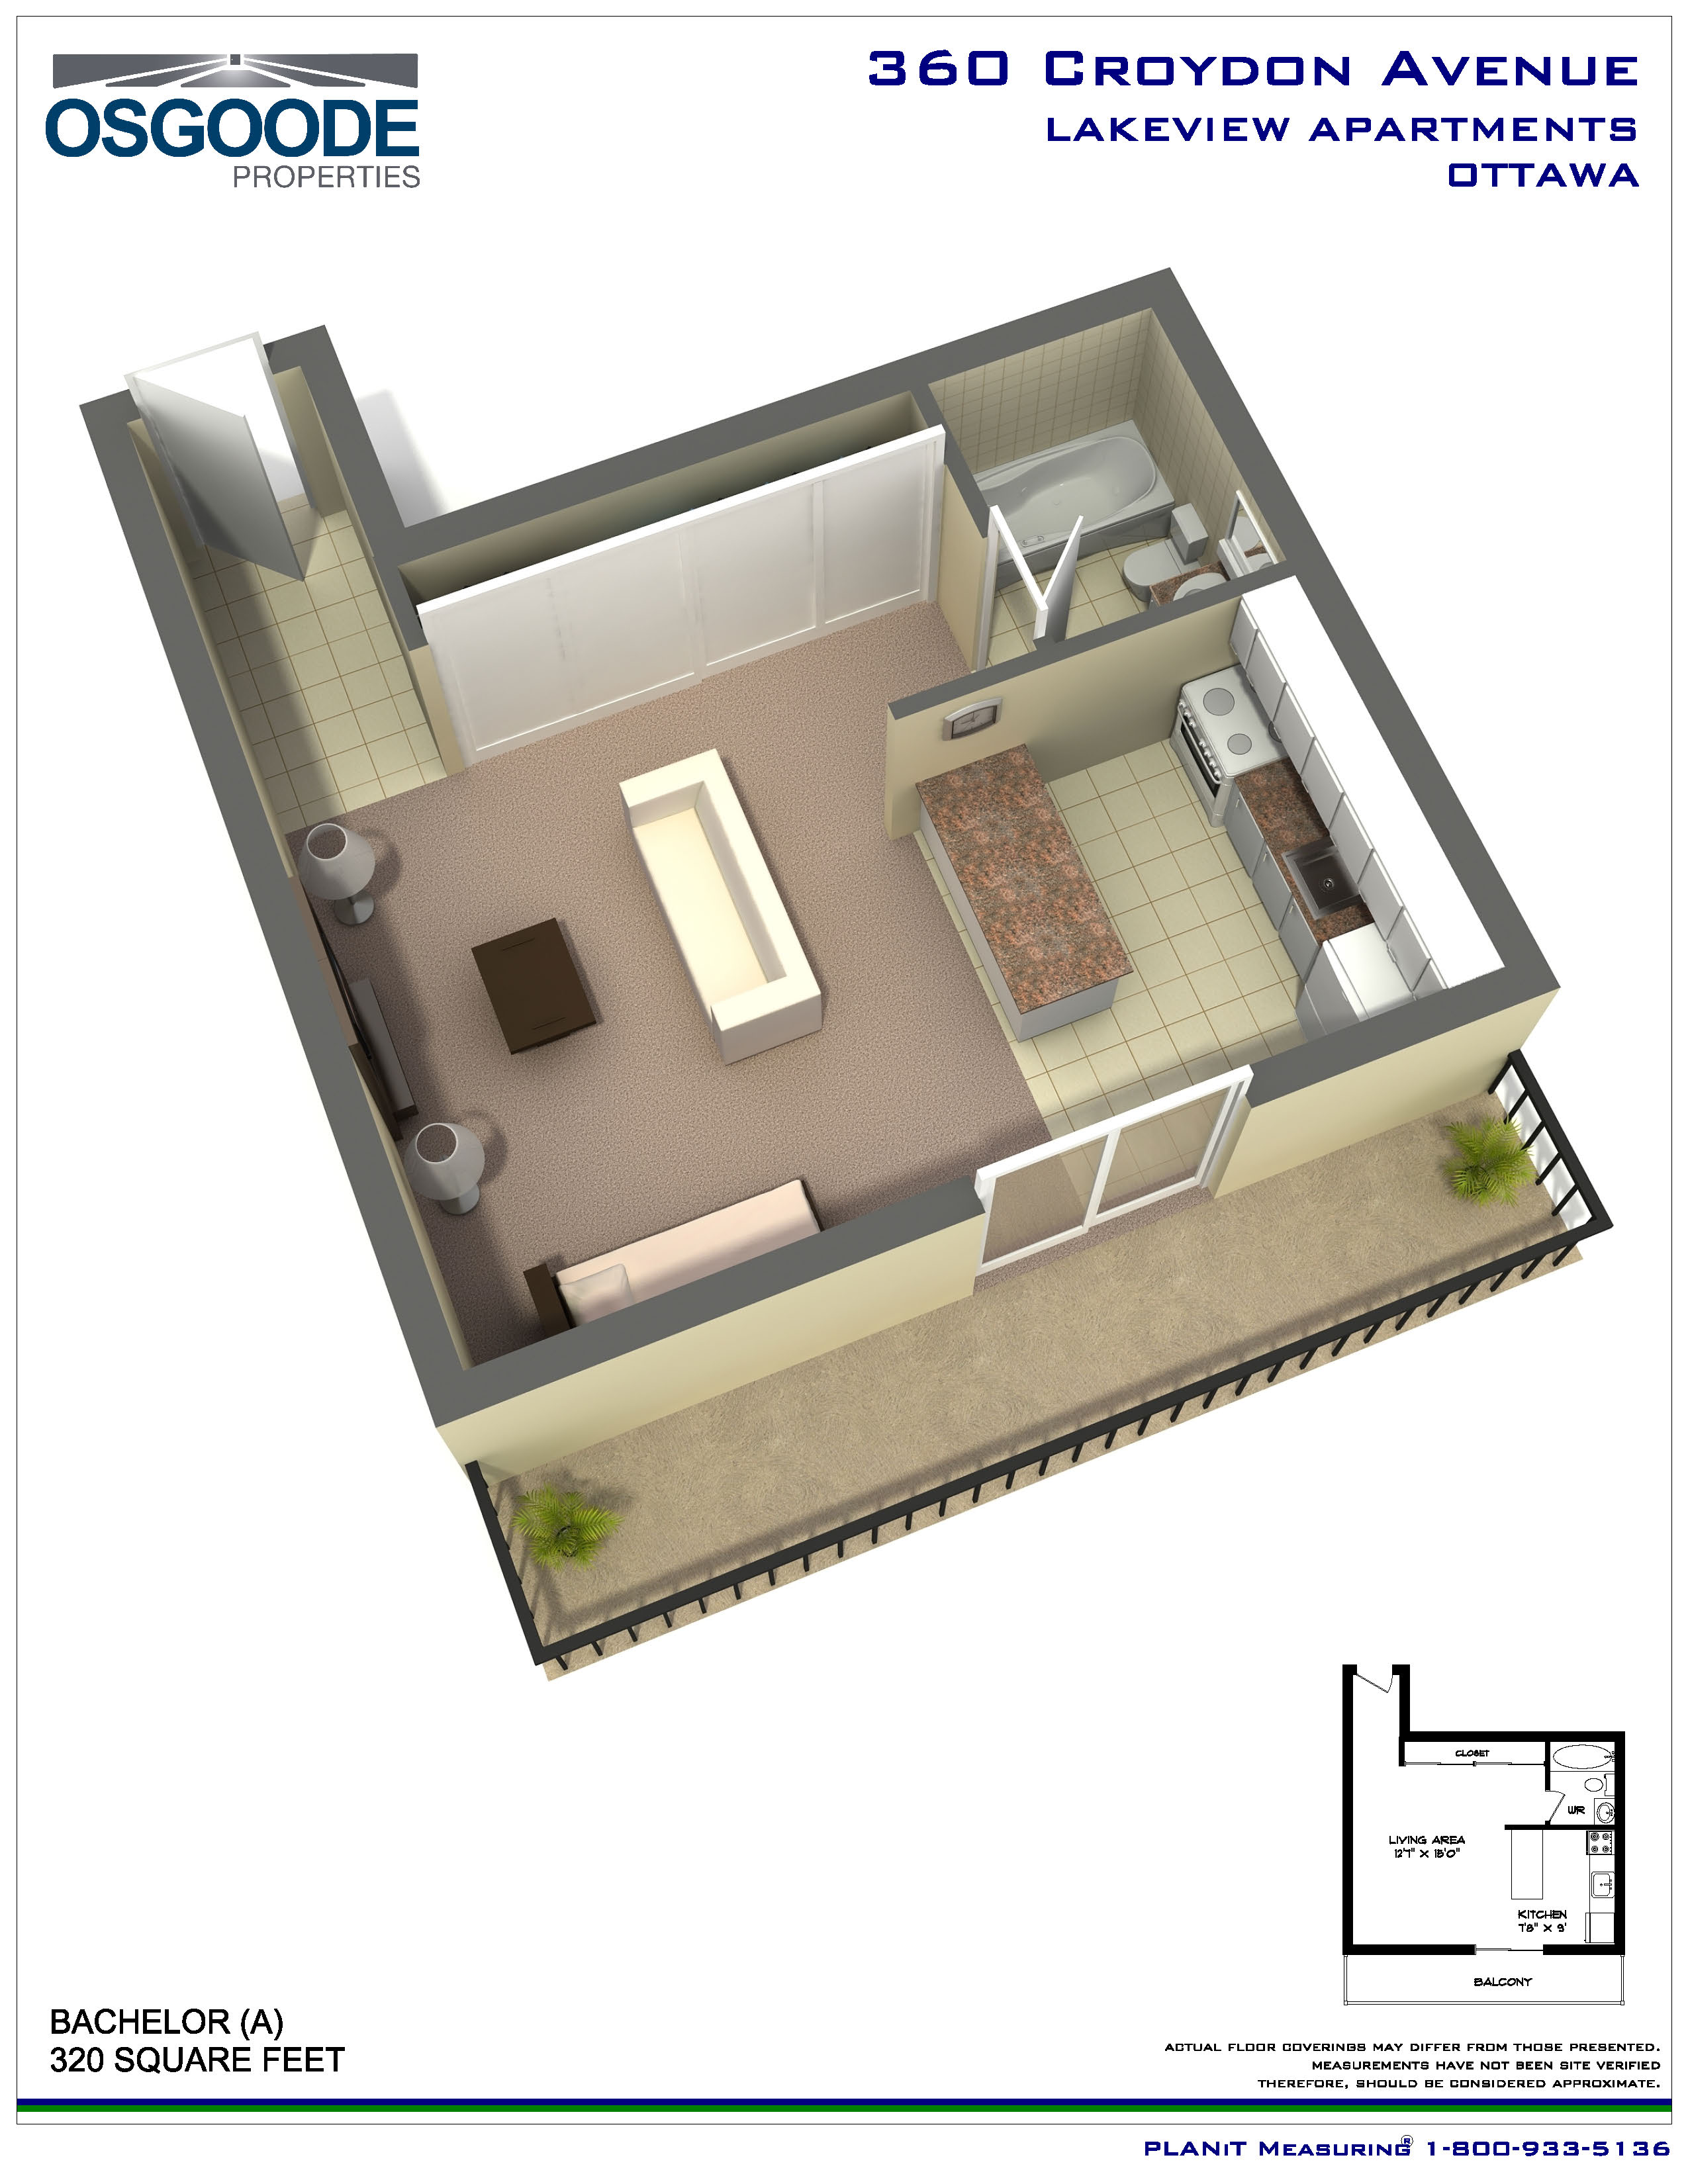 Rent at lakeview apartments in ottawa ontario for Bachelor flat plans